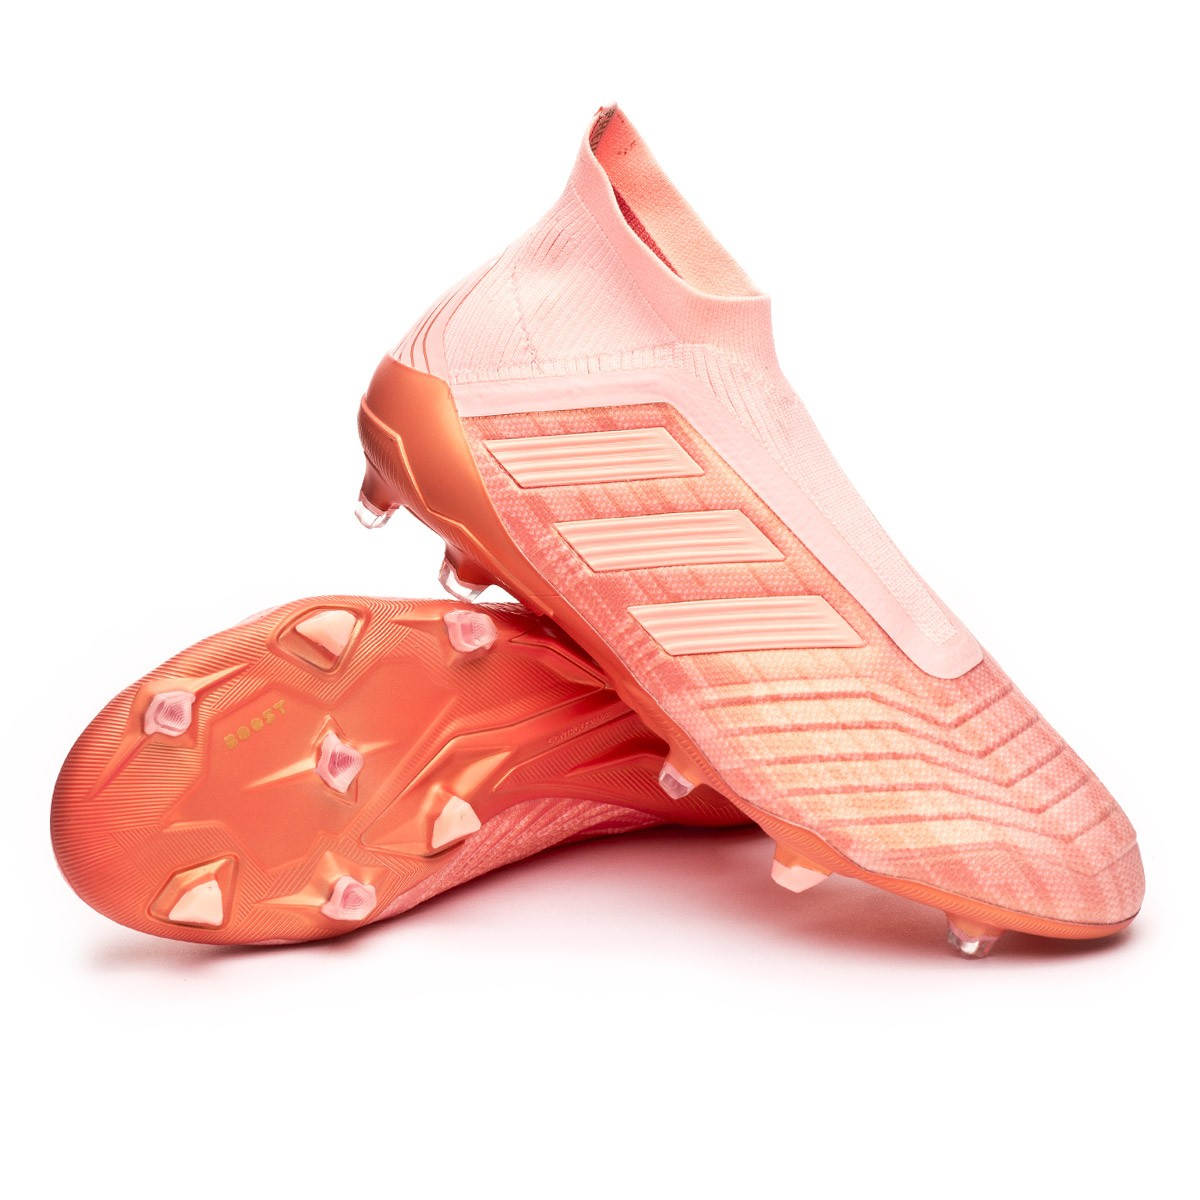 premium selection e1c3d 4c88e Chaussure de foot adidas Predator 18+ FG Clear orange-Trace pink - Boutique de  football Fútbol Emotion